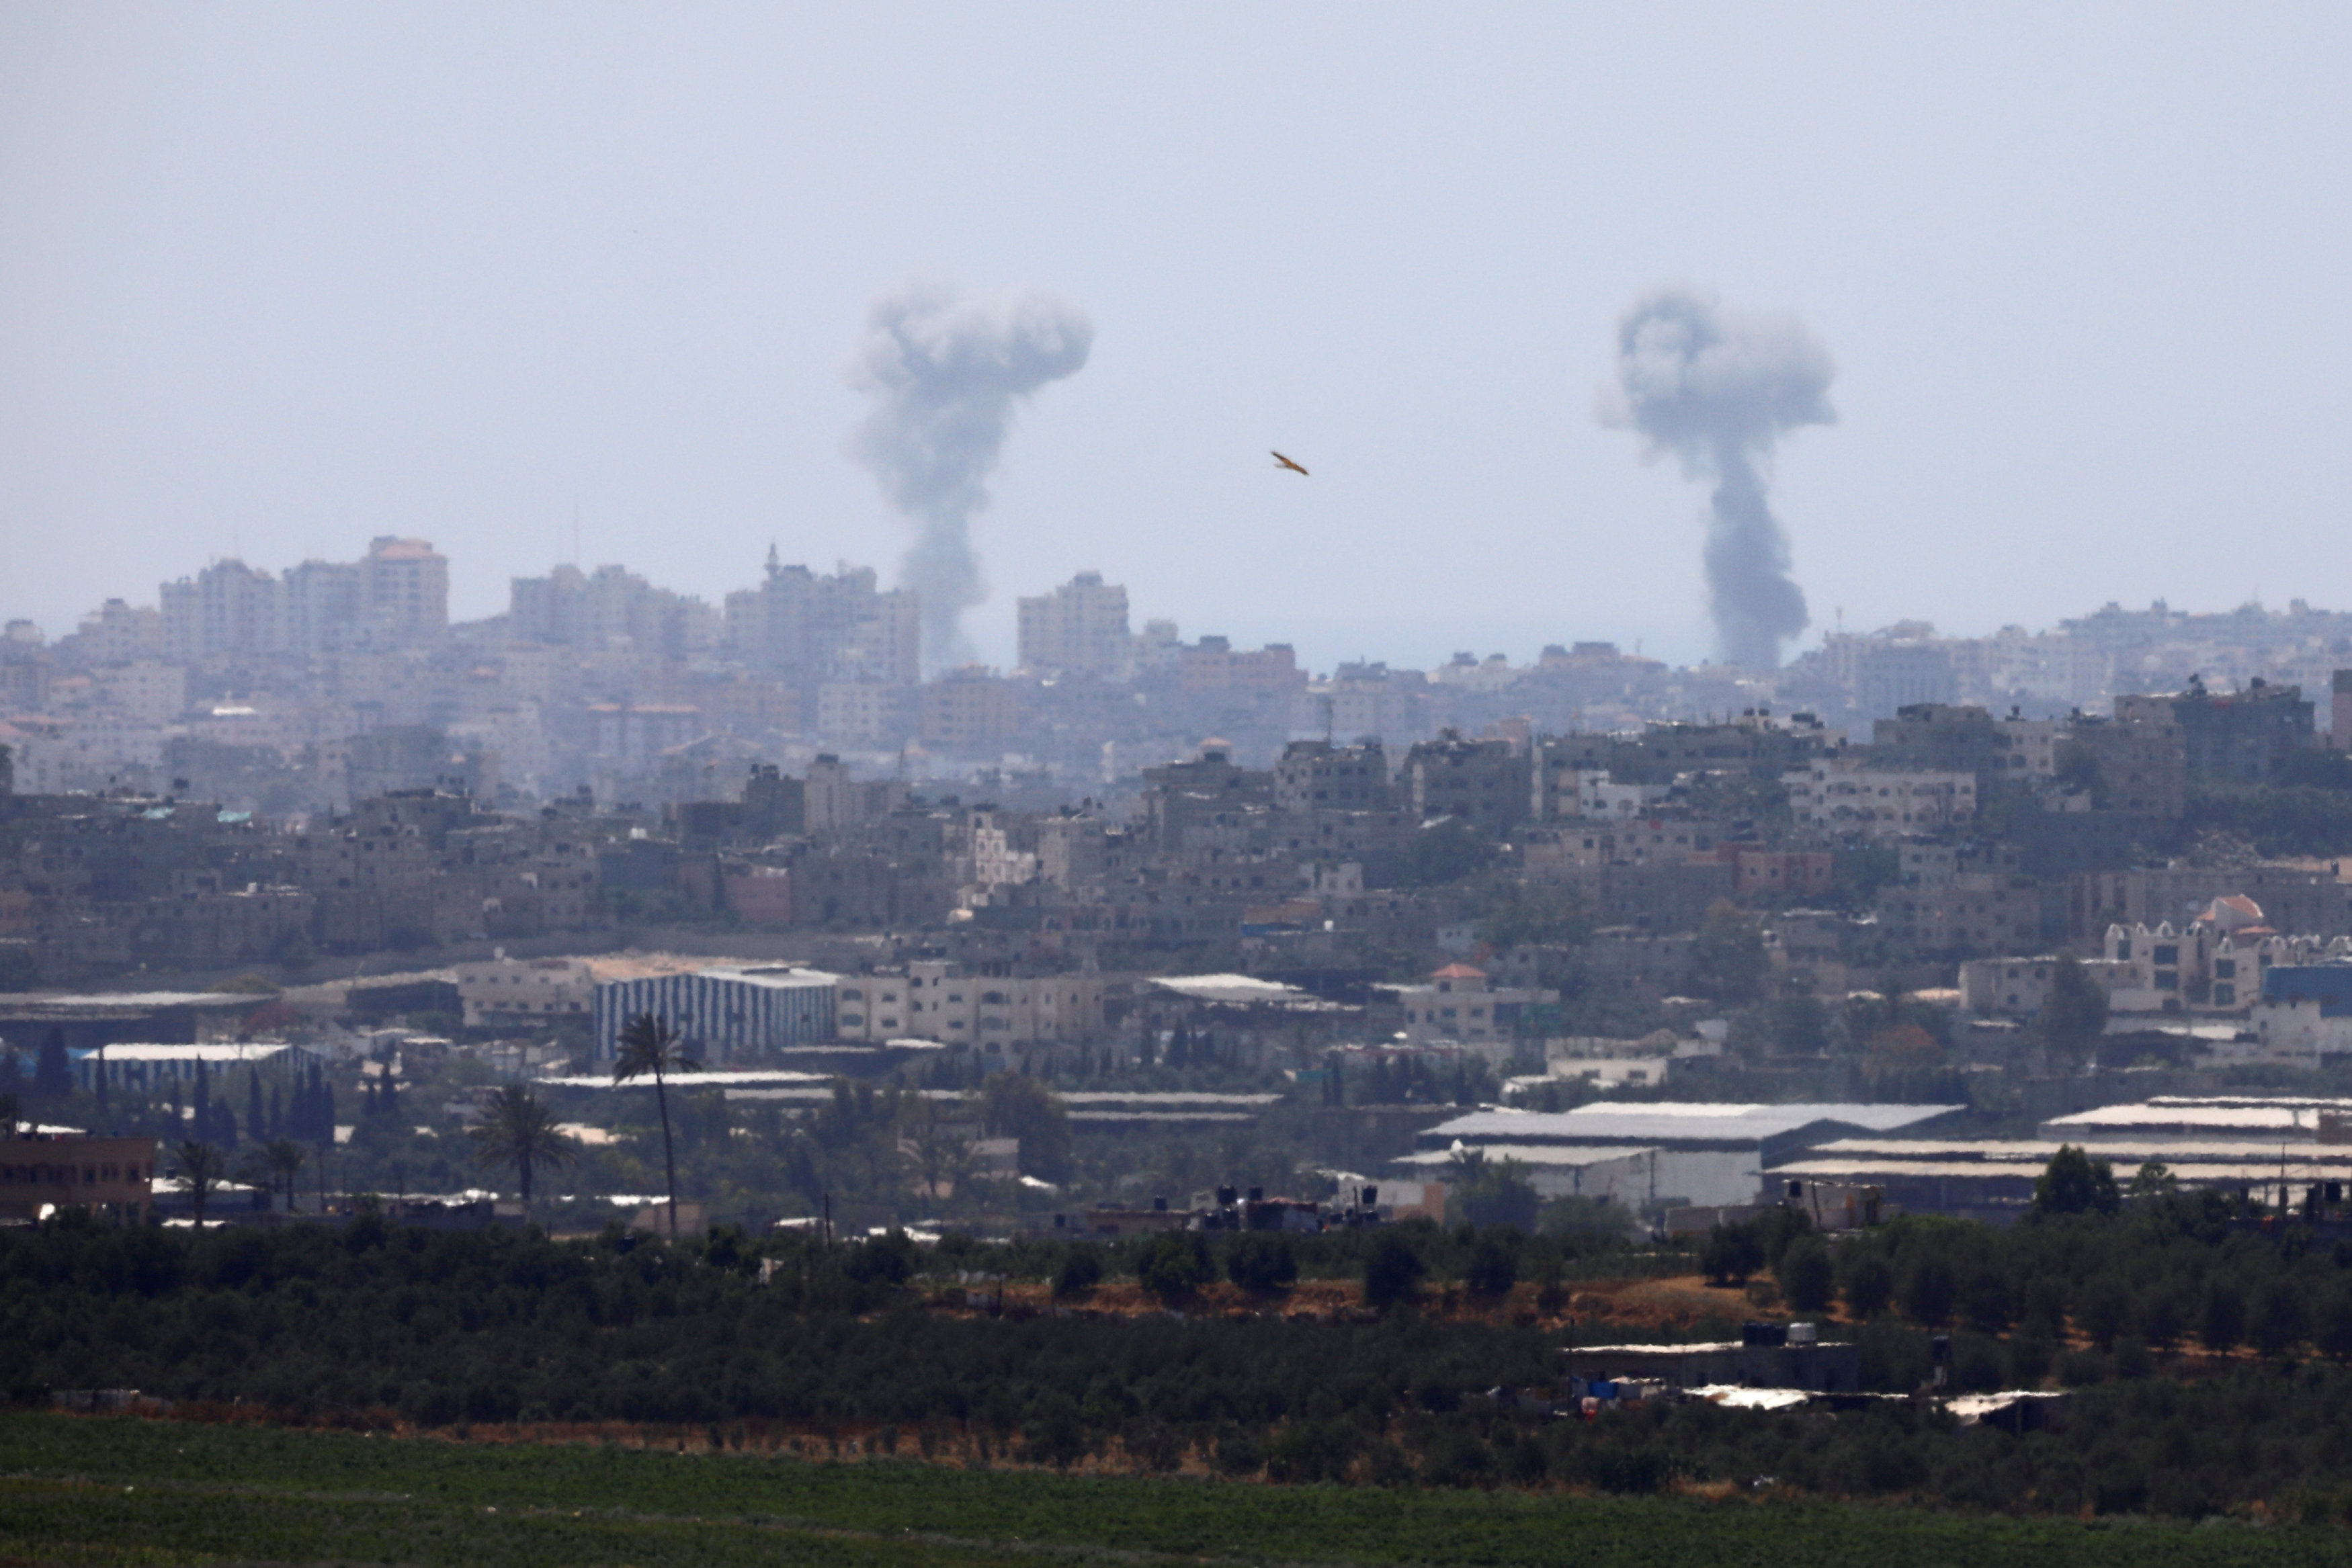 Smoke rises following an Israeli air strike in the Gaza Strip, as seen from the Israeli side of the border between Israel and Gaza, May 29, 2018. REUTERS/Amir Cohen